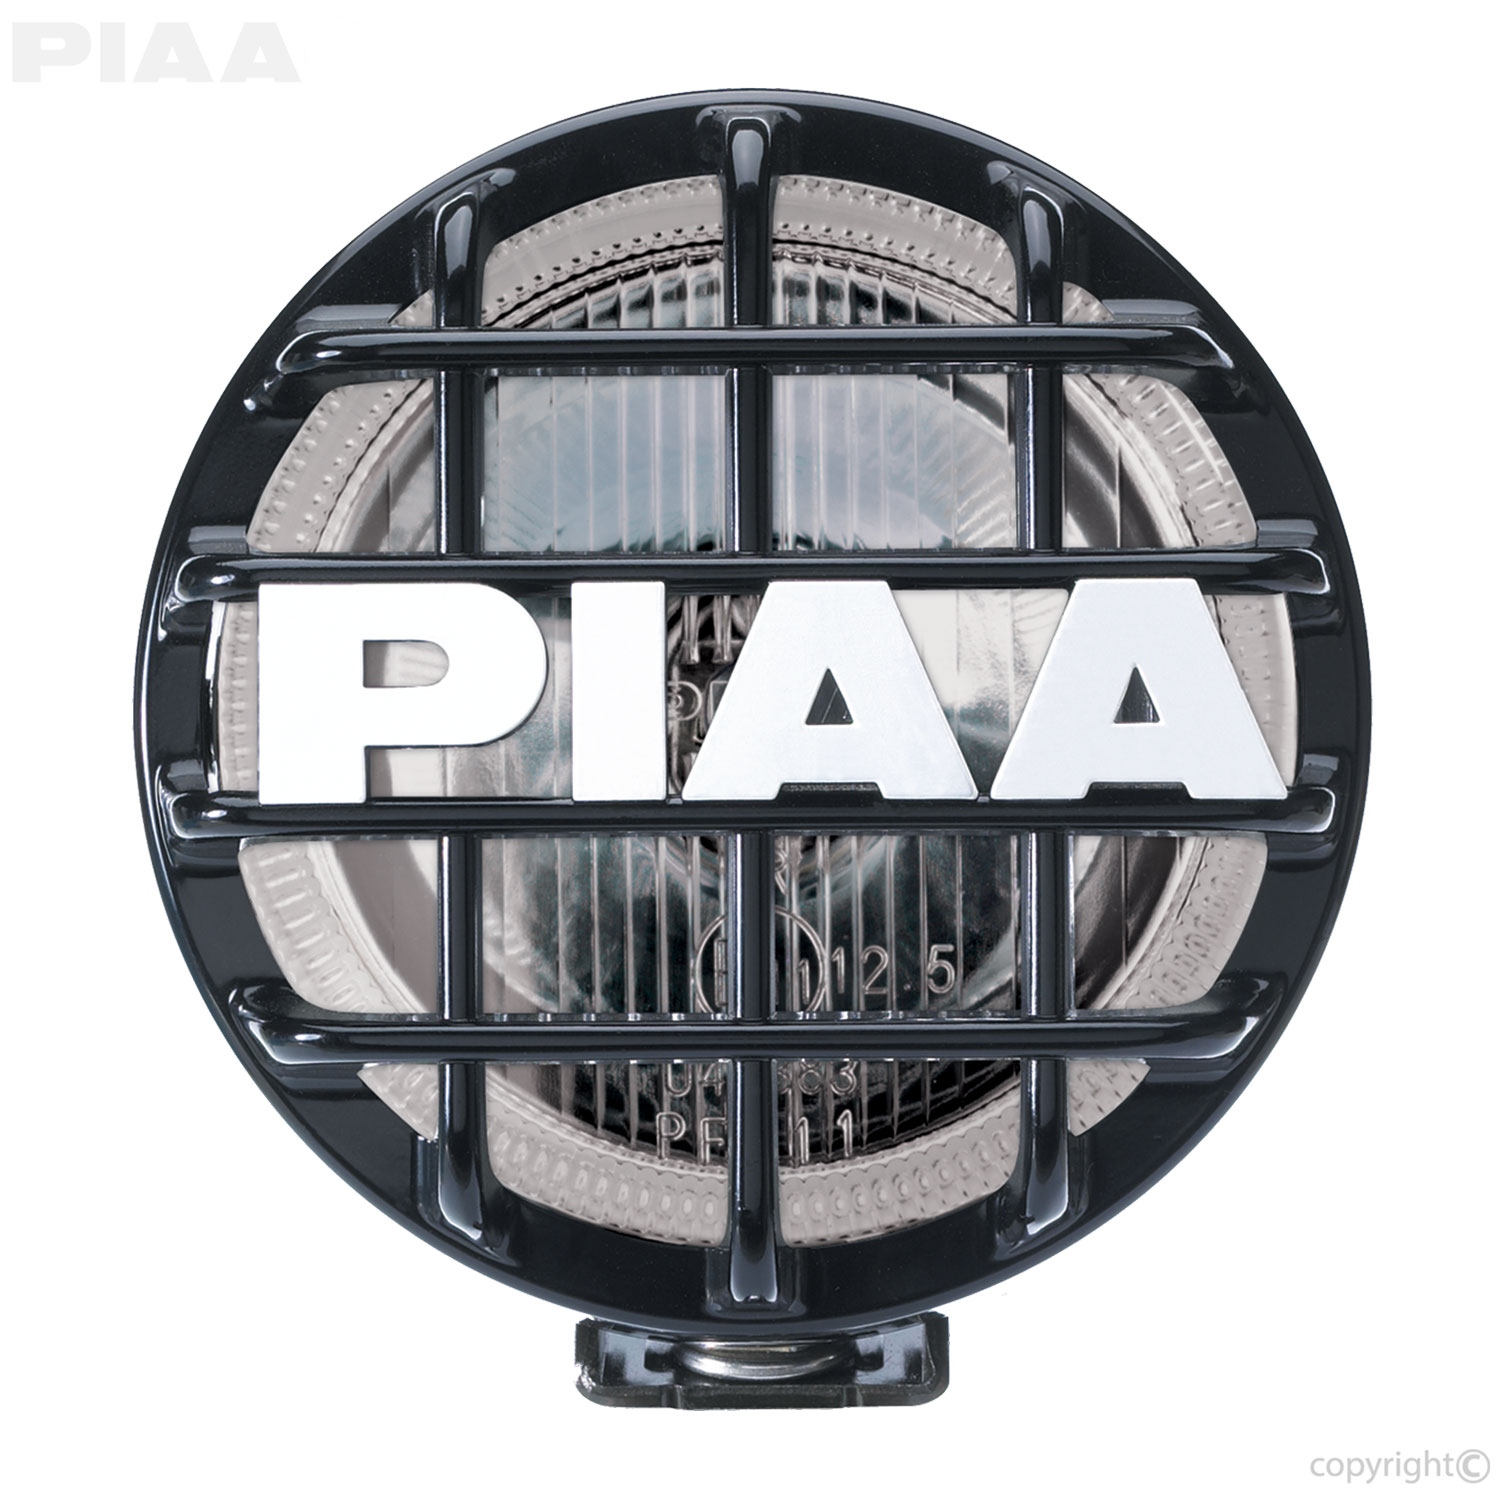 piaa fog lights wiring diagram parts of a crossbow pl5fb common heat pump thermostat